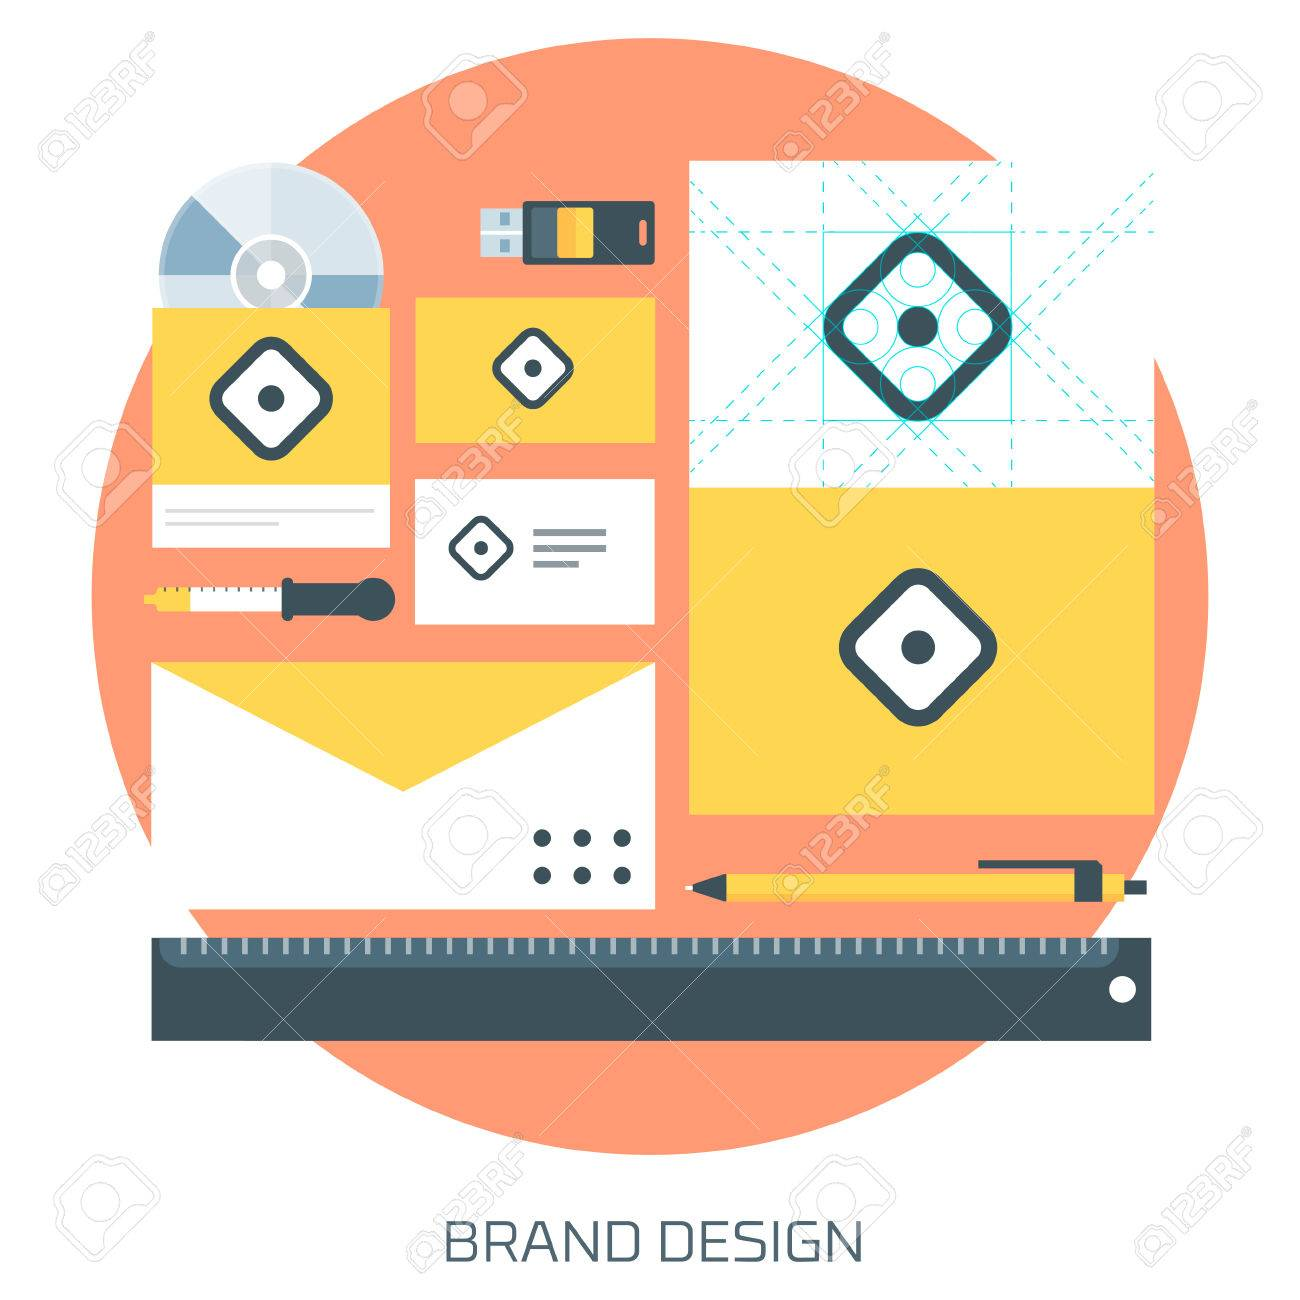 Brand Design theme flat style, minimal, stylish colorful, vector icon for info graphics, websites, mobile and print media. - 41709358